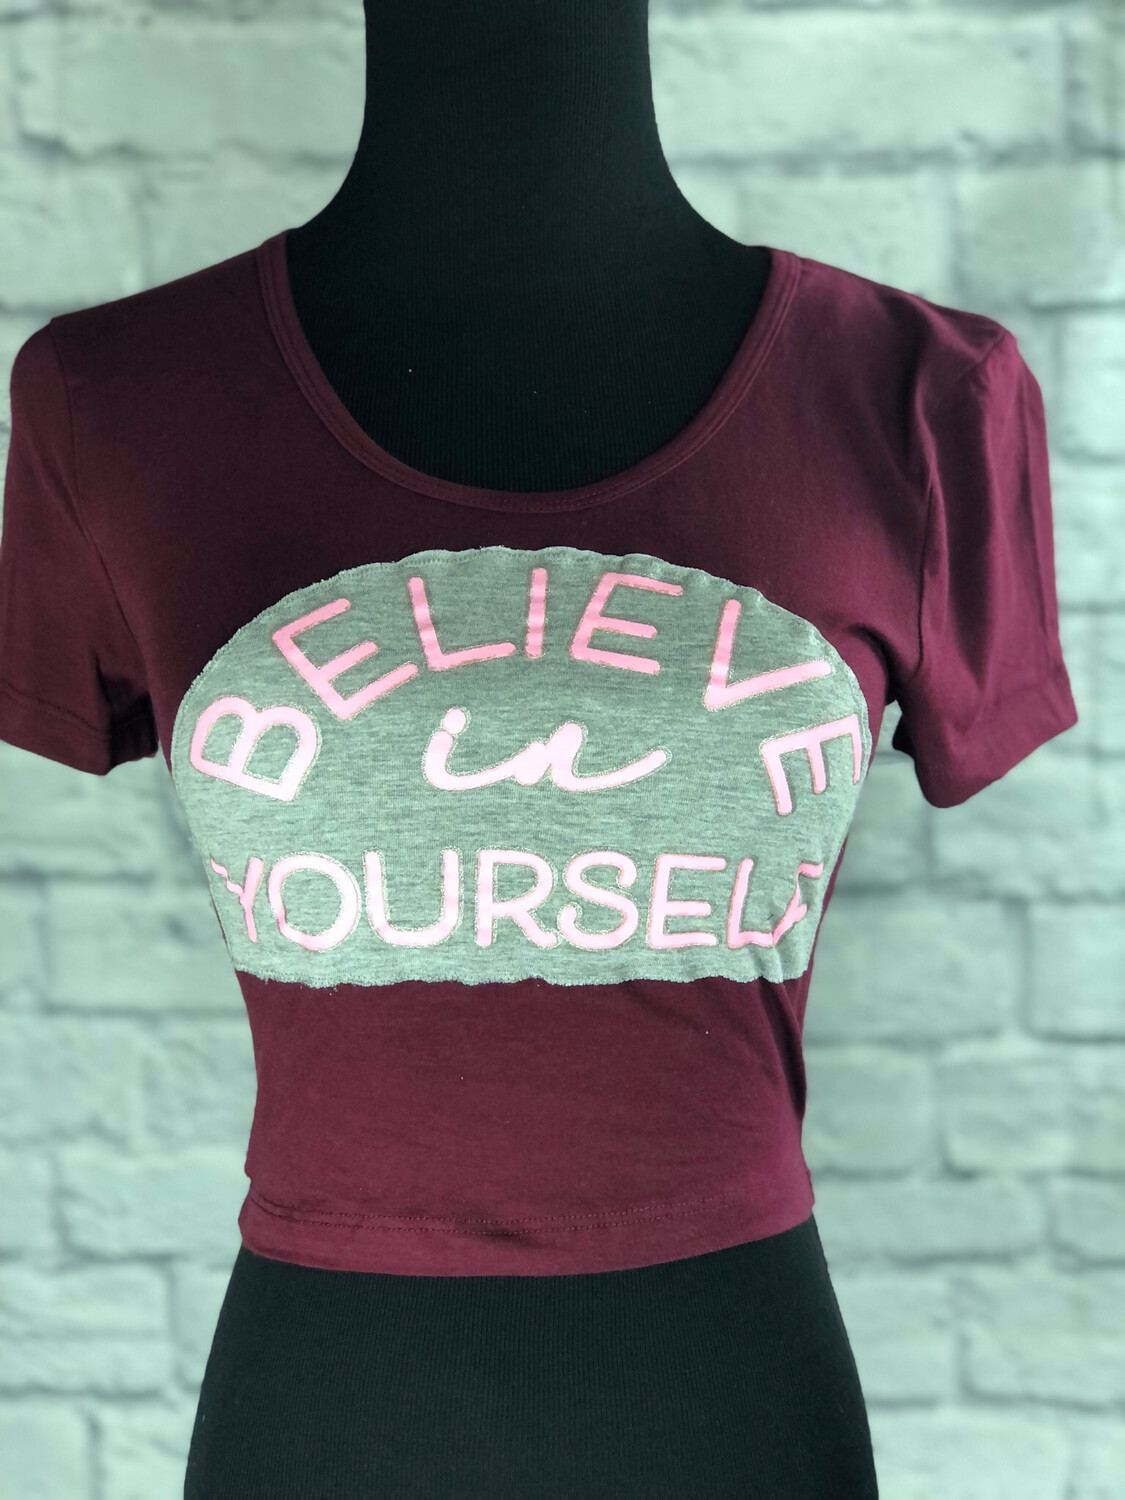 S Threads Upcycled Crop Top Believe In Yourself Size XS/S